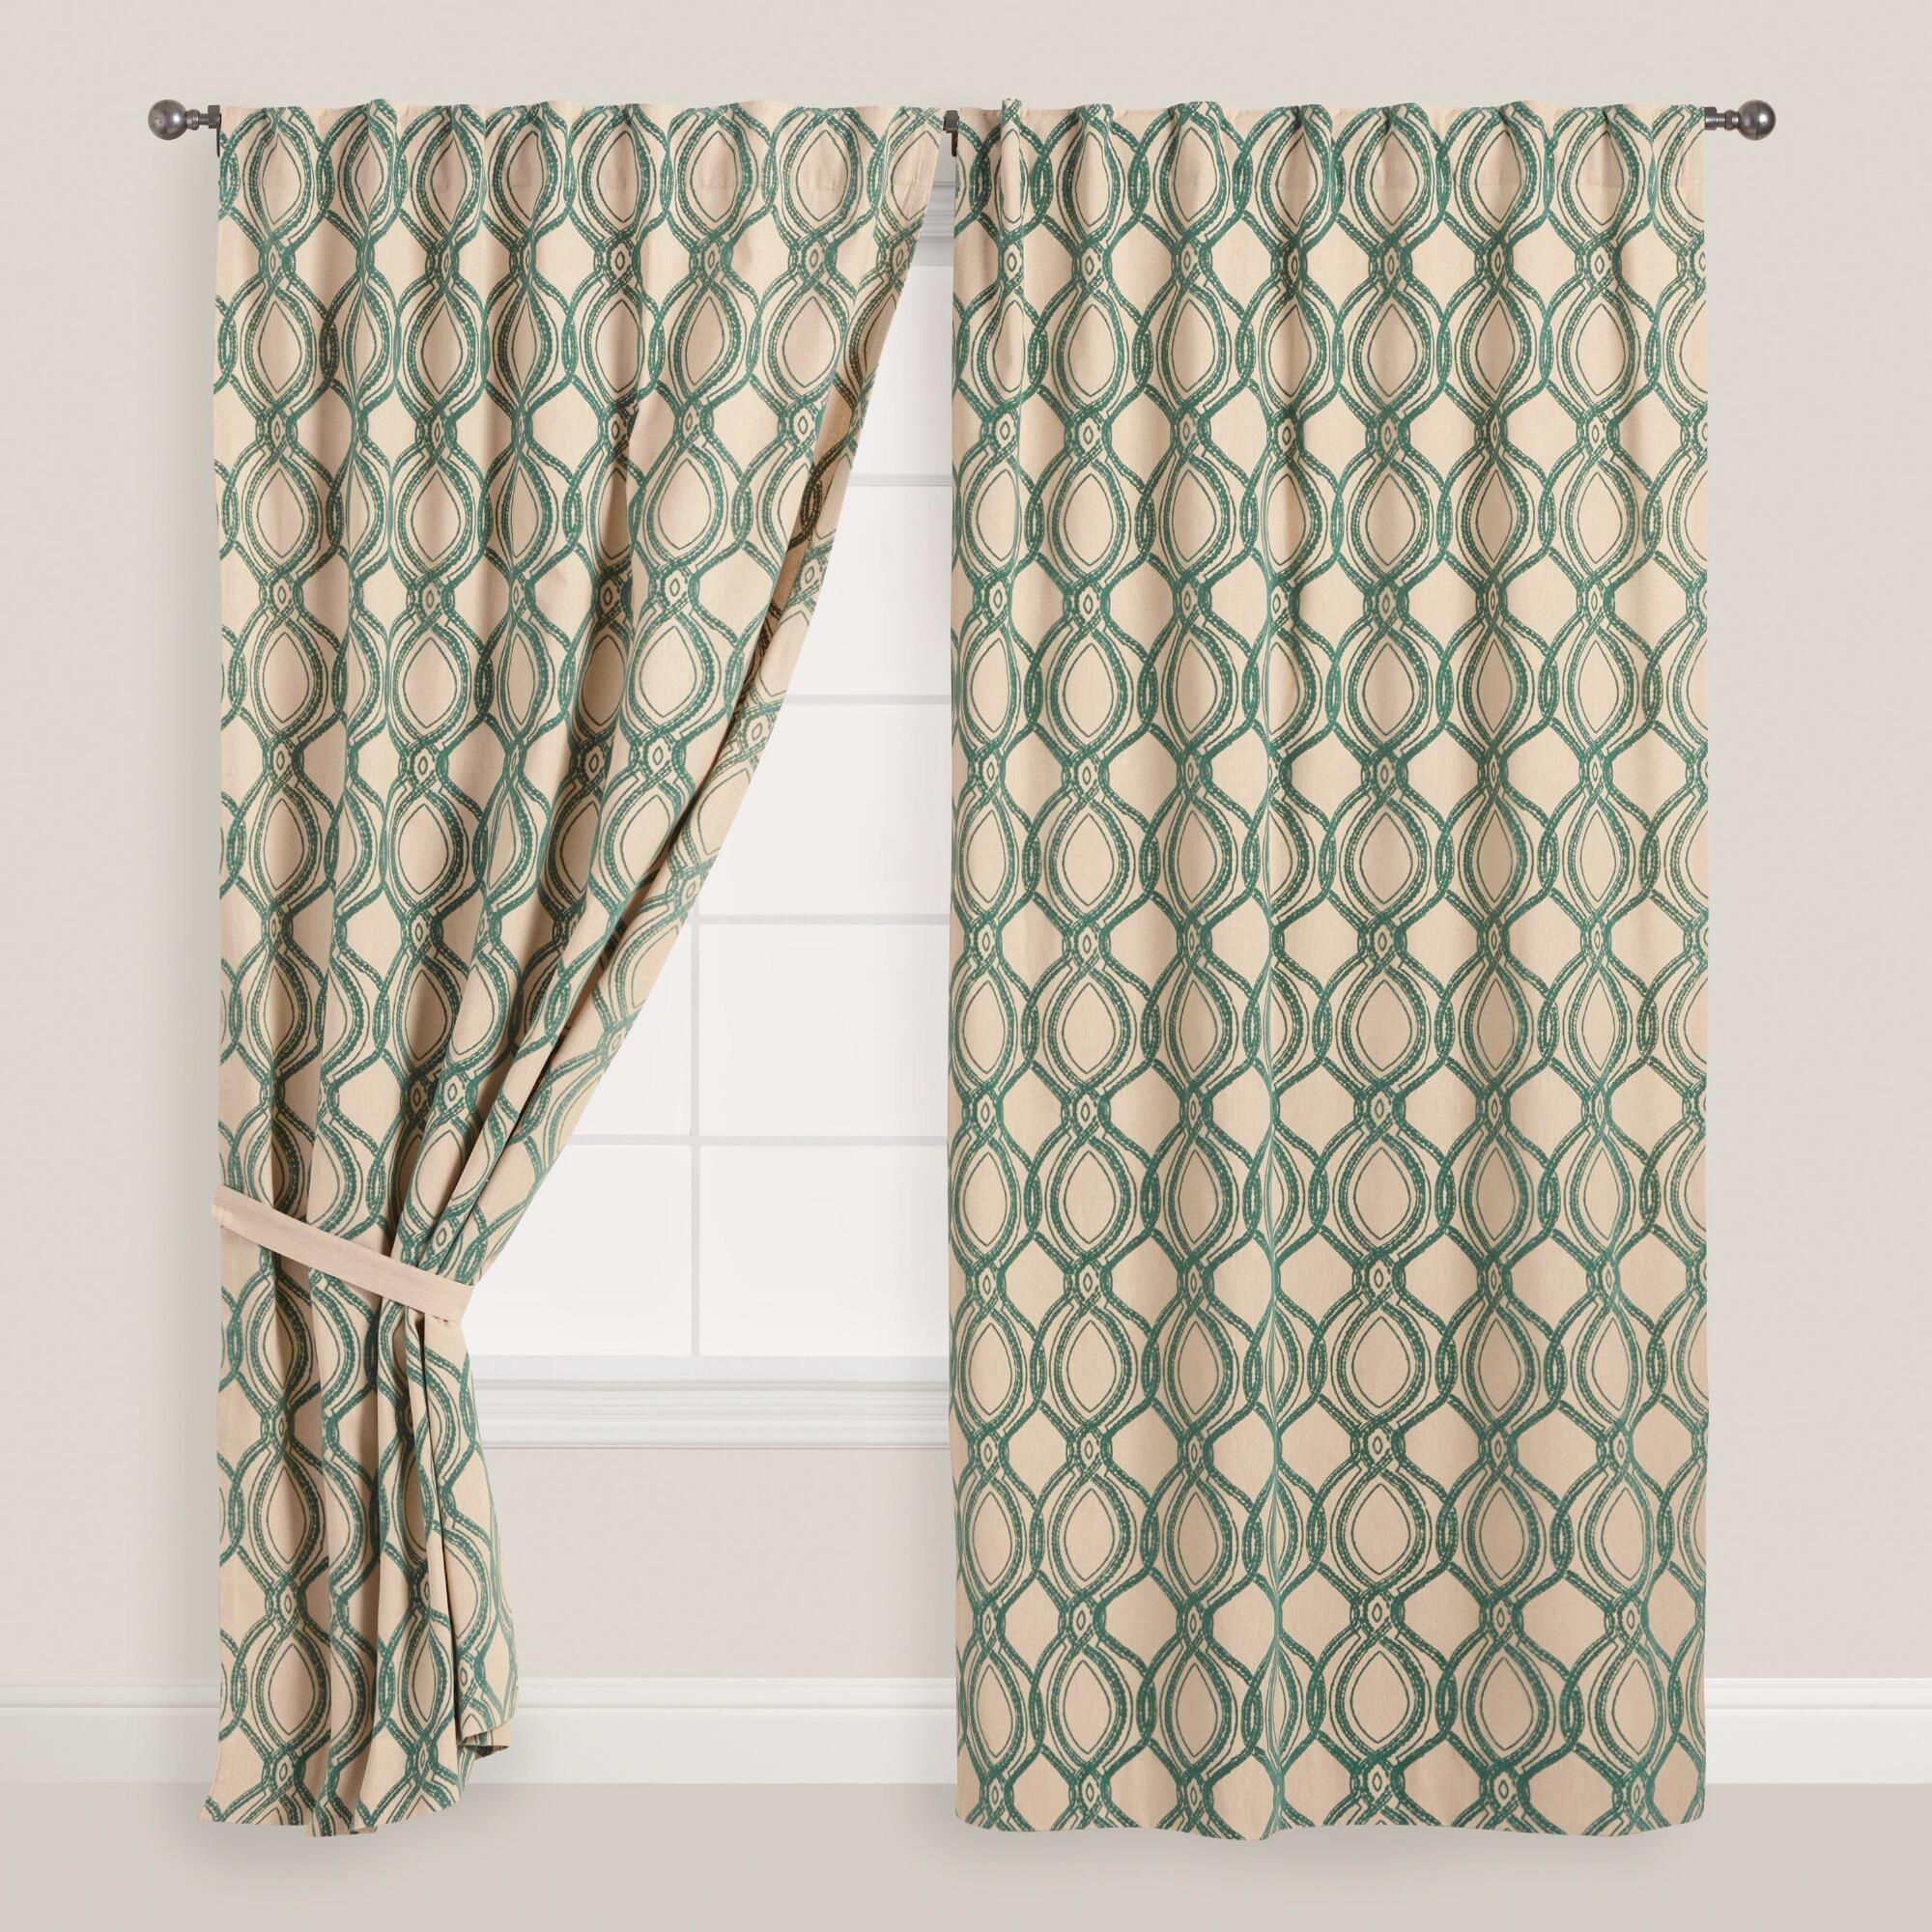 room darkening chambray rod com tangier homes better curtain ip panel walmart and pocket gardens curtains